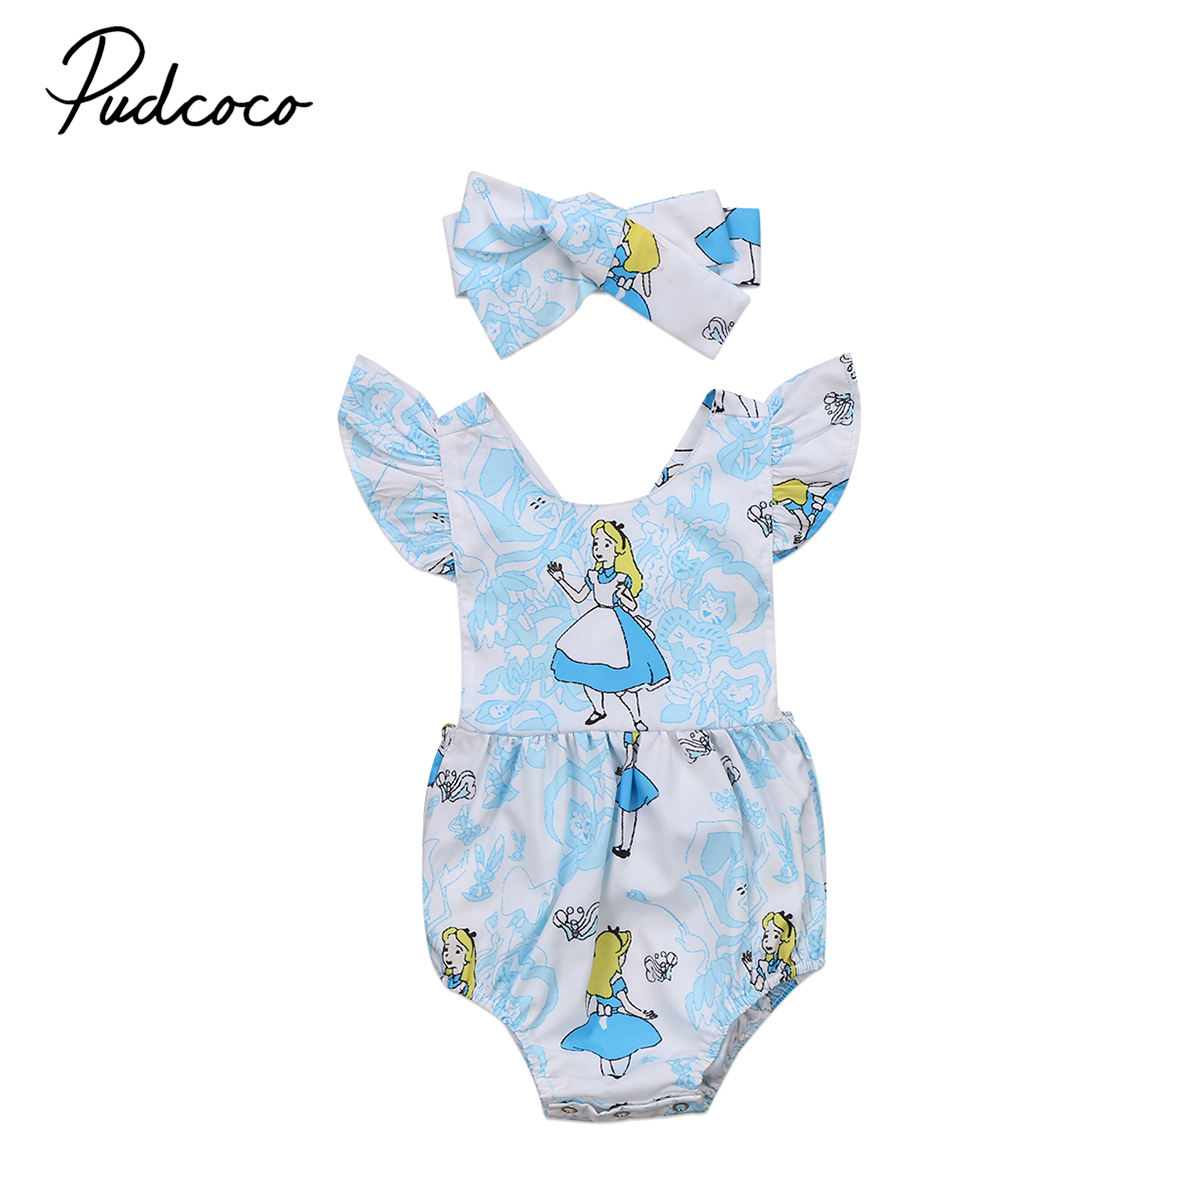 Sweet Newborn Baby Girls Clothing Short sleeve Princess Print Romper Jumpsuit Baby Cotton Blue Clothes Outfits 0-2Y